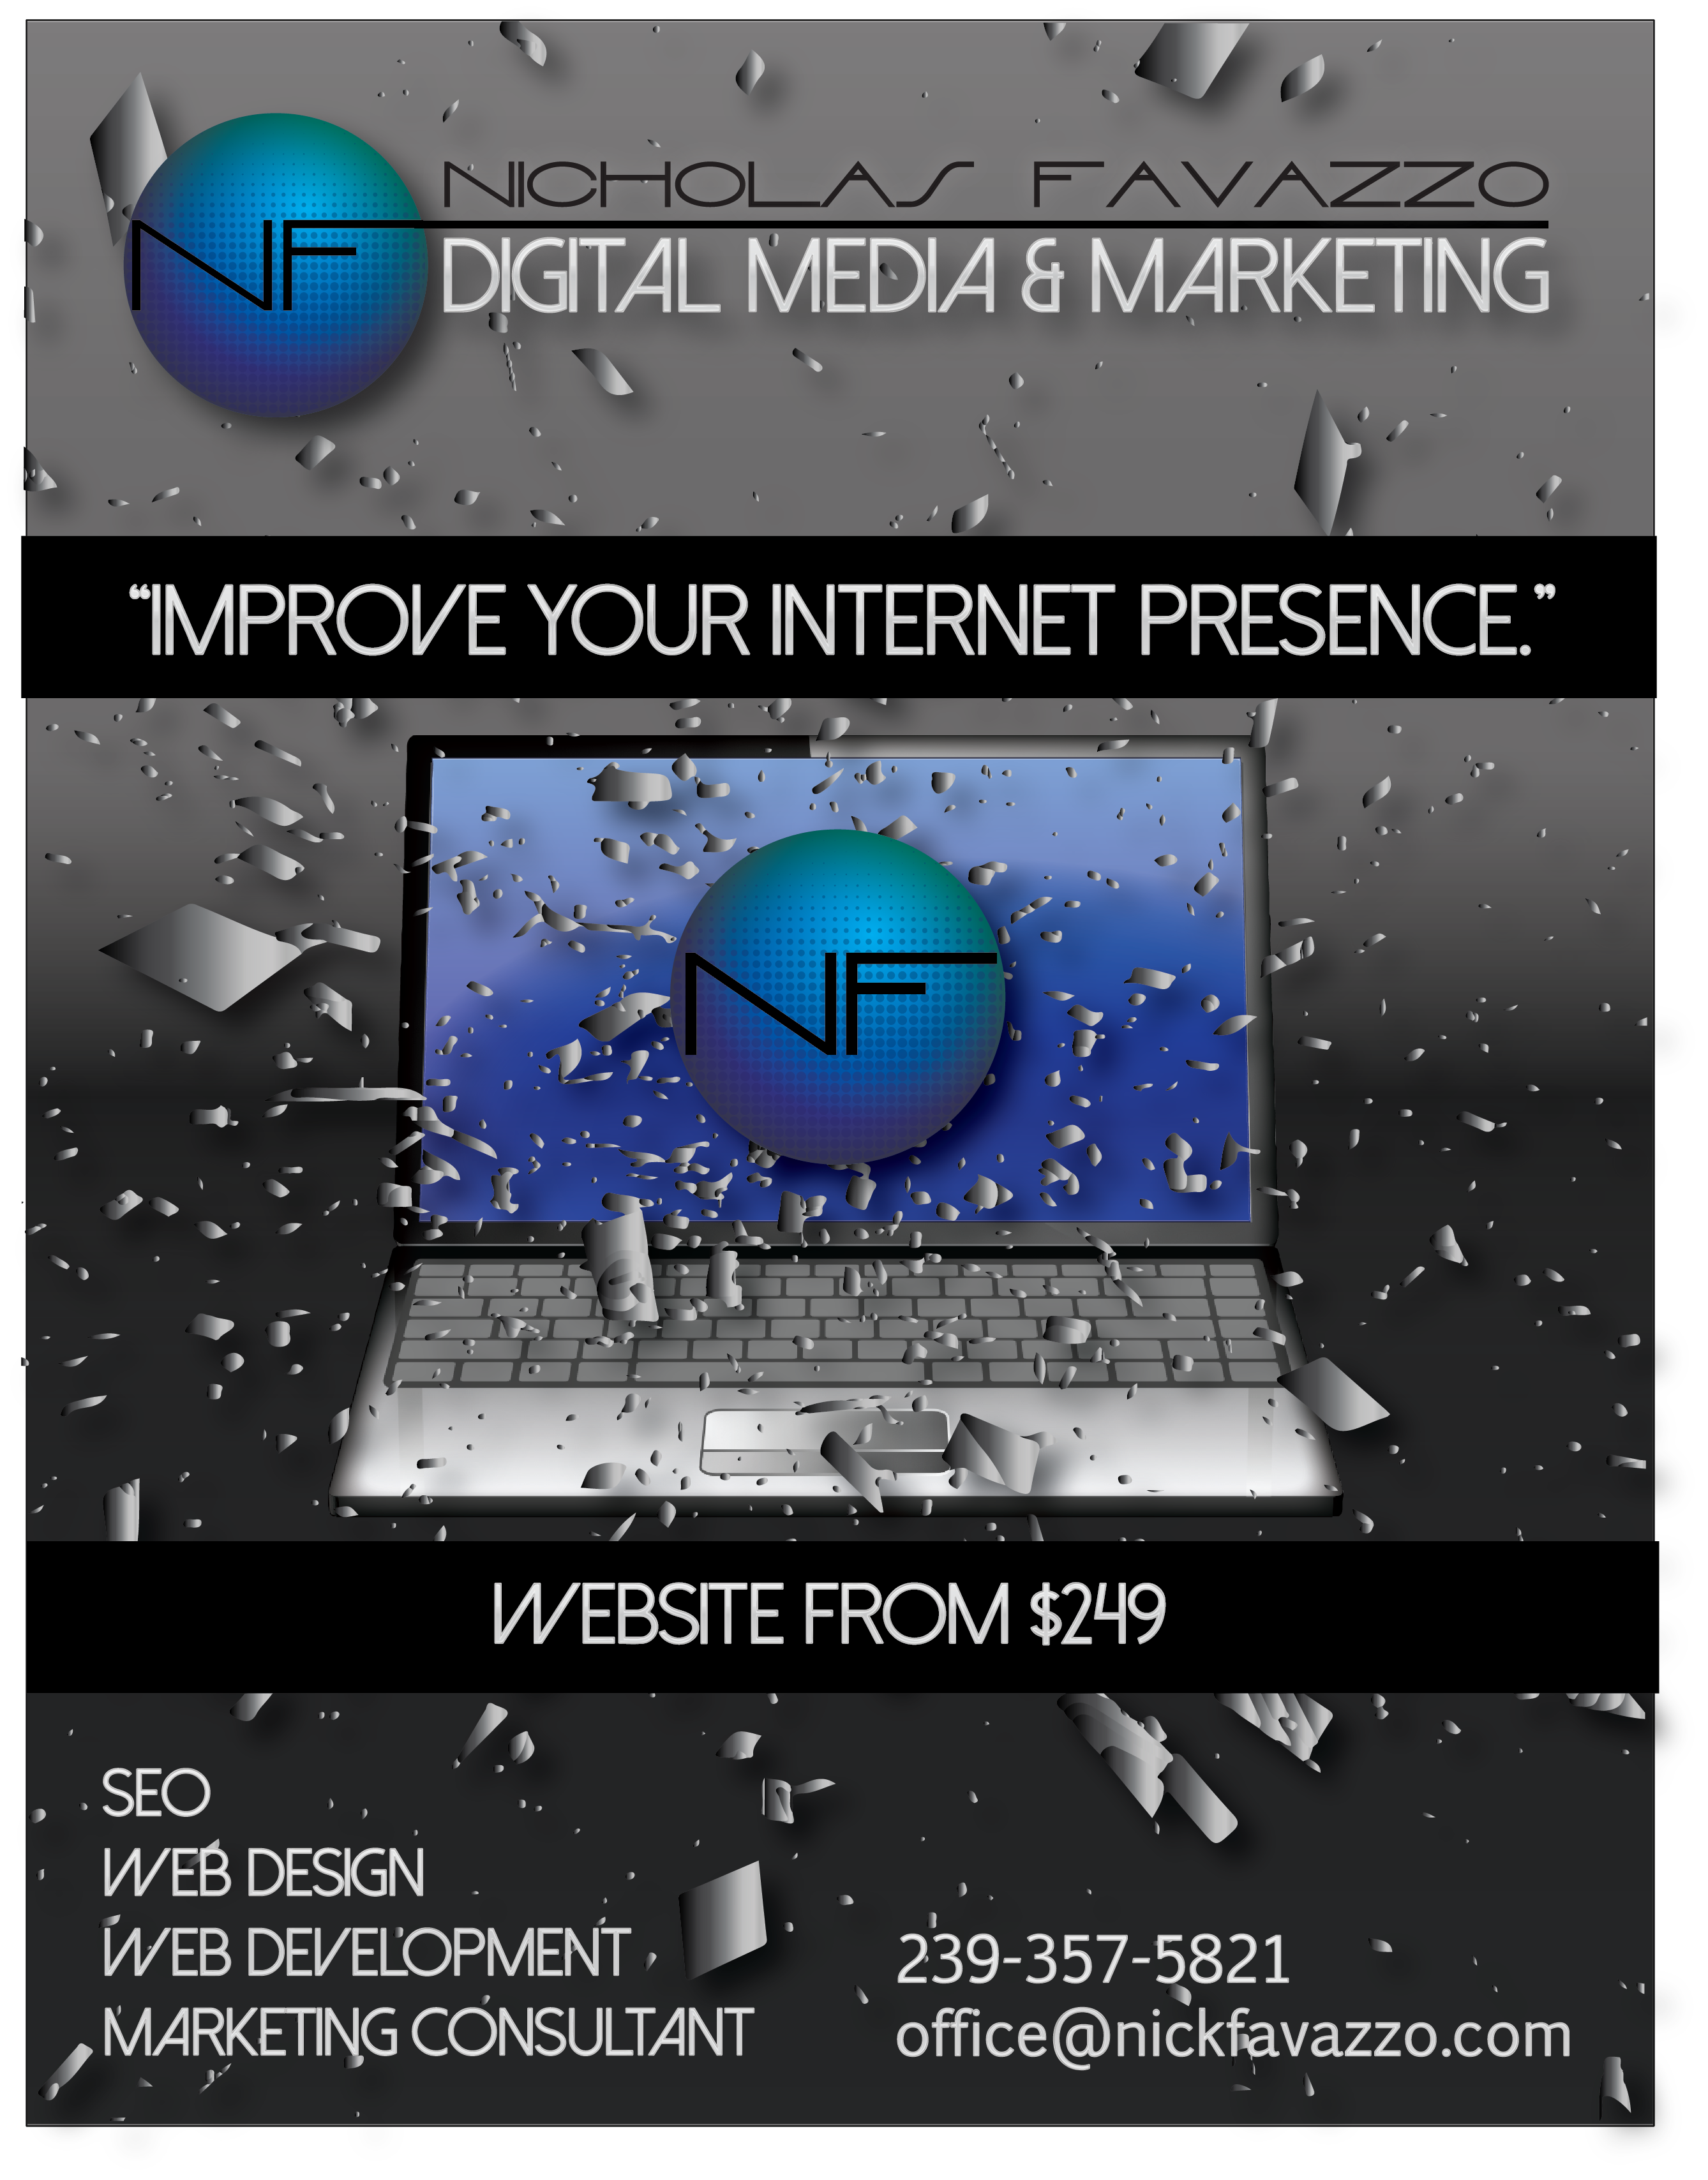 Nicholas Favazzo Digital Media & Marketing offers affordable responsive website design and development.